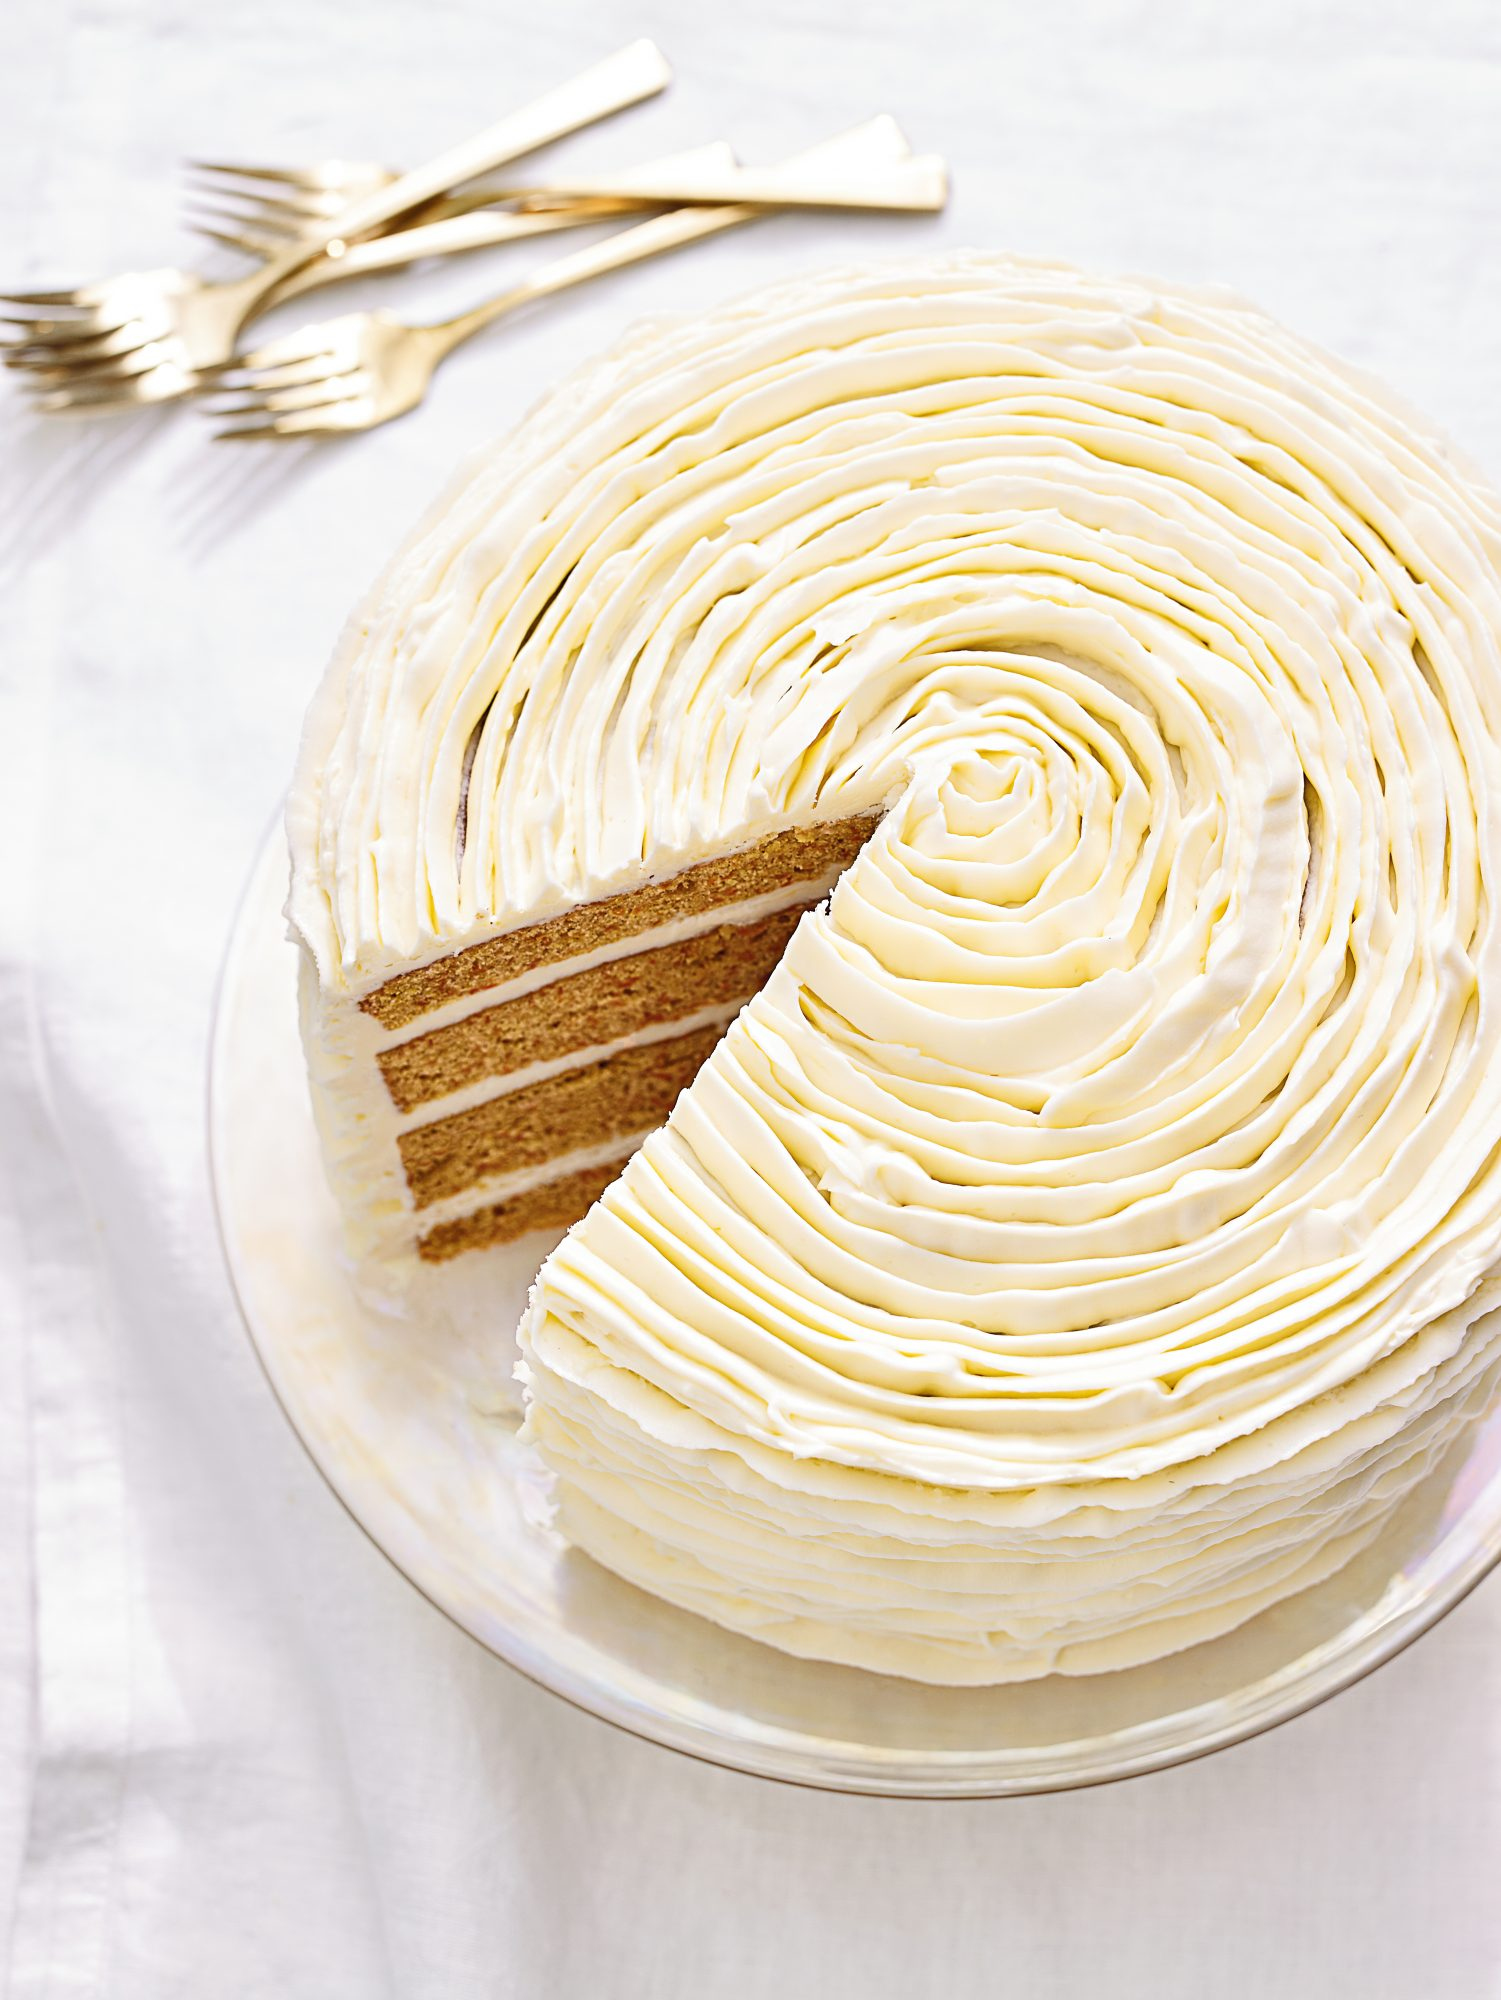 Martha Stewart Cake Perfection Carrot Cake with White Chocolate Frosting